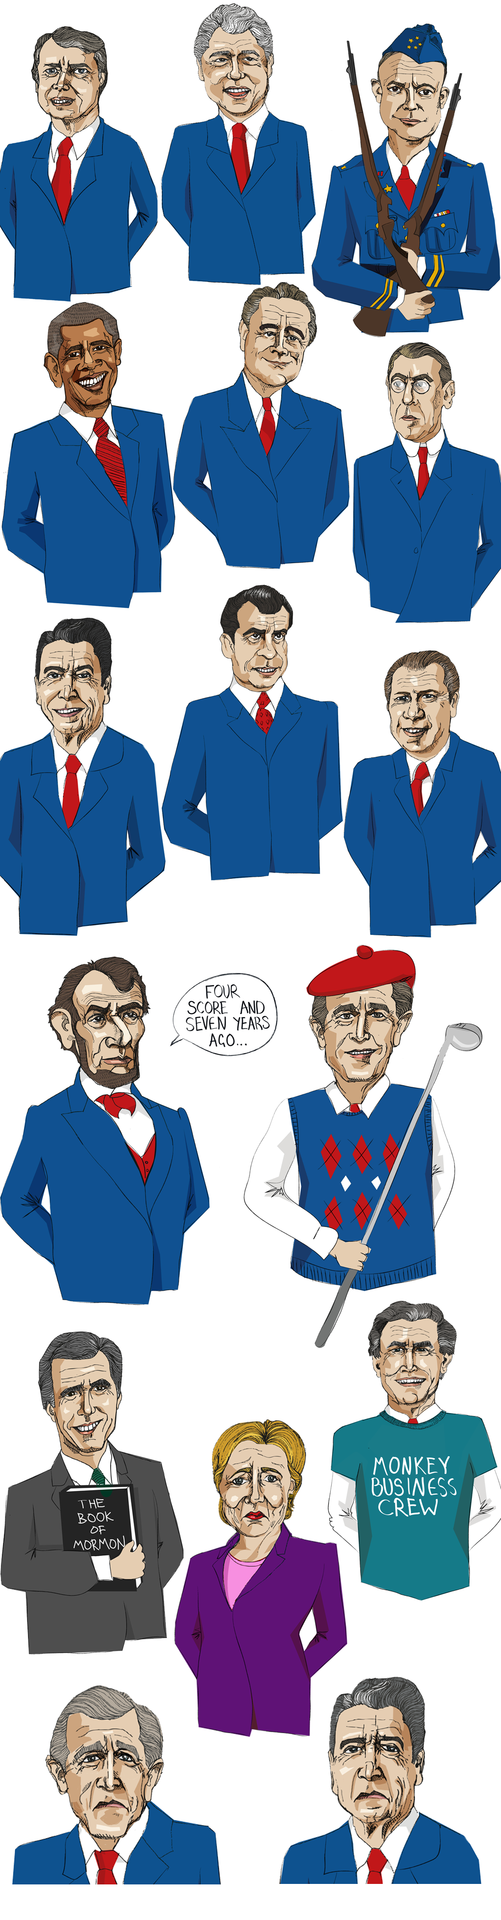 I was commissioned by  DamnFine Media  to draw the illustrations for three films to be shown on the  Guardian website . For the films, entitled 'How to be the president of the USA', 'The History of the Rebublican Party' and 'The History of the Democrat Party', I needed to illustrate a number of Presidents along with a variety of expressions, additional characters and create costumes for all the chips who were to play the part of the american public!   The Films were American Diner / fast food themed and while filming I had to draw backgrounds and words in ketchup and mustard around the main characters.    It was strange week of filming, but now my ketchup drawing skills are pretty polished and I'm sure will come in useful again at some point!? It was also a refreshing change from my normal digital illustration style and it was nice to work on some portraits again.    You can see all three films  HERE  on the Guardian website, ' How to be president of the USA ', ' History of the Democrat Party ' and ' History of the Republican Party '